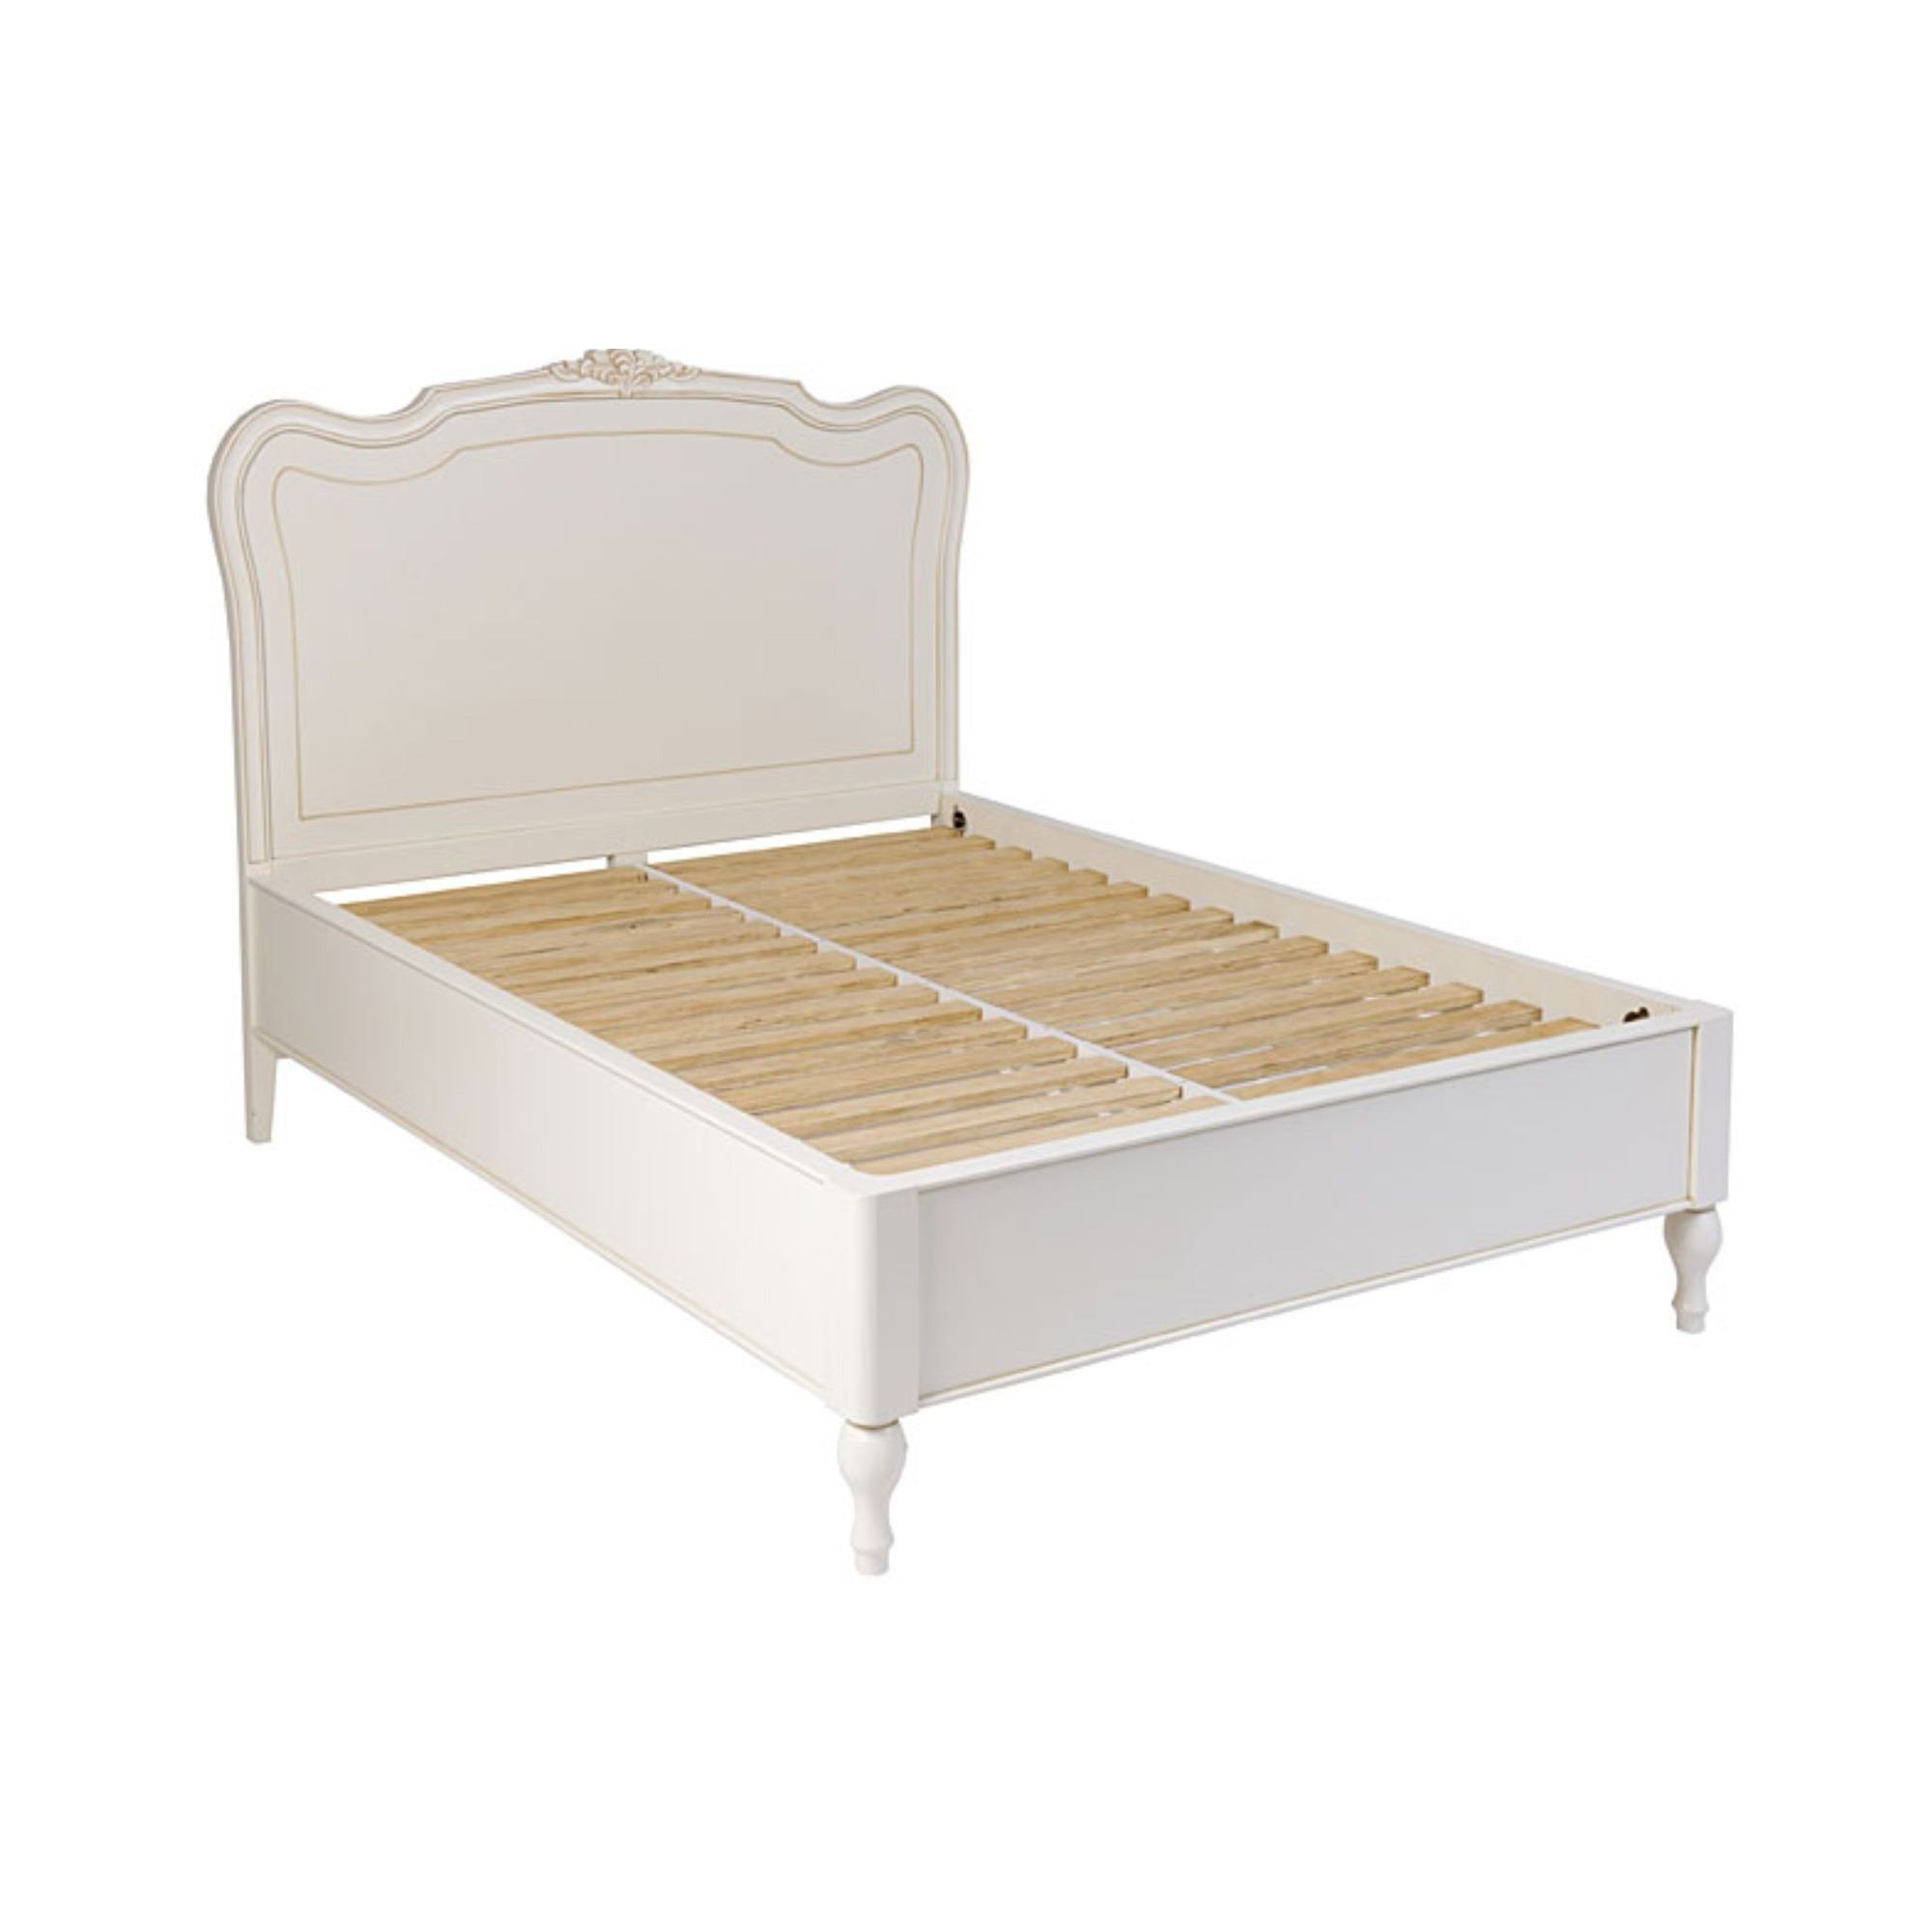 Kelburn Furniture Laurent Panel Bed - Double at Tesco Direct